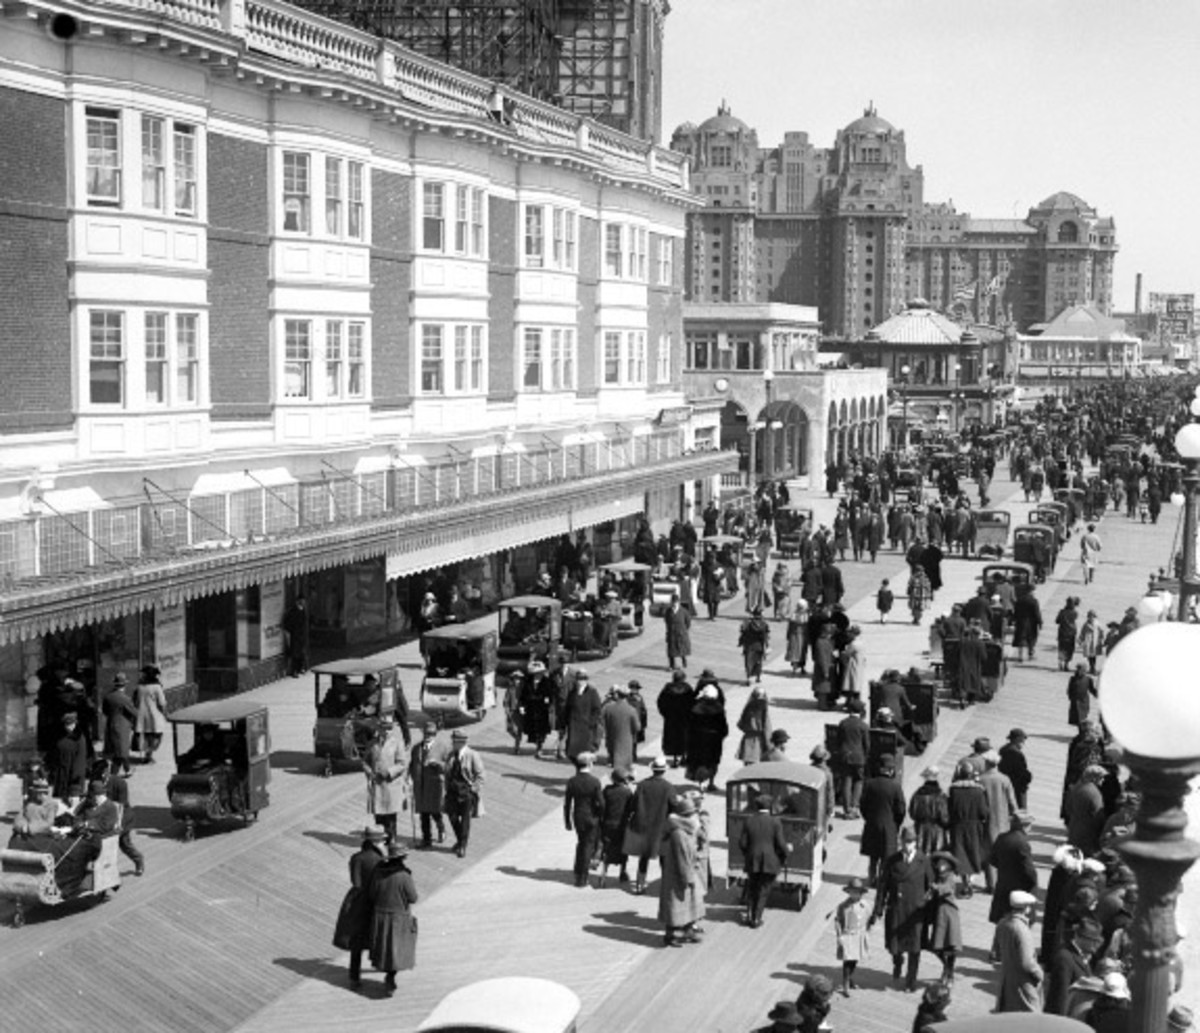 1920s Atlantic City, from archive photographs